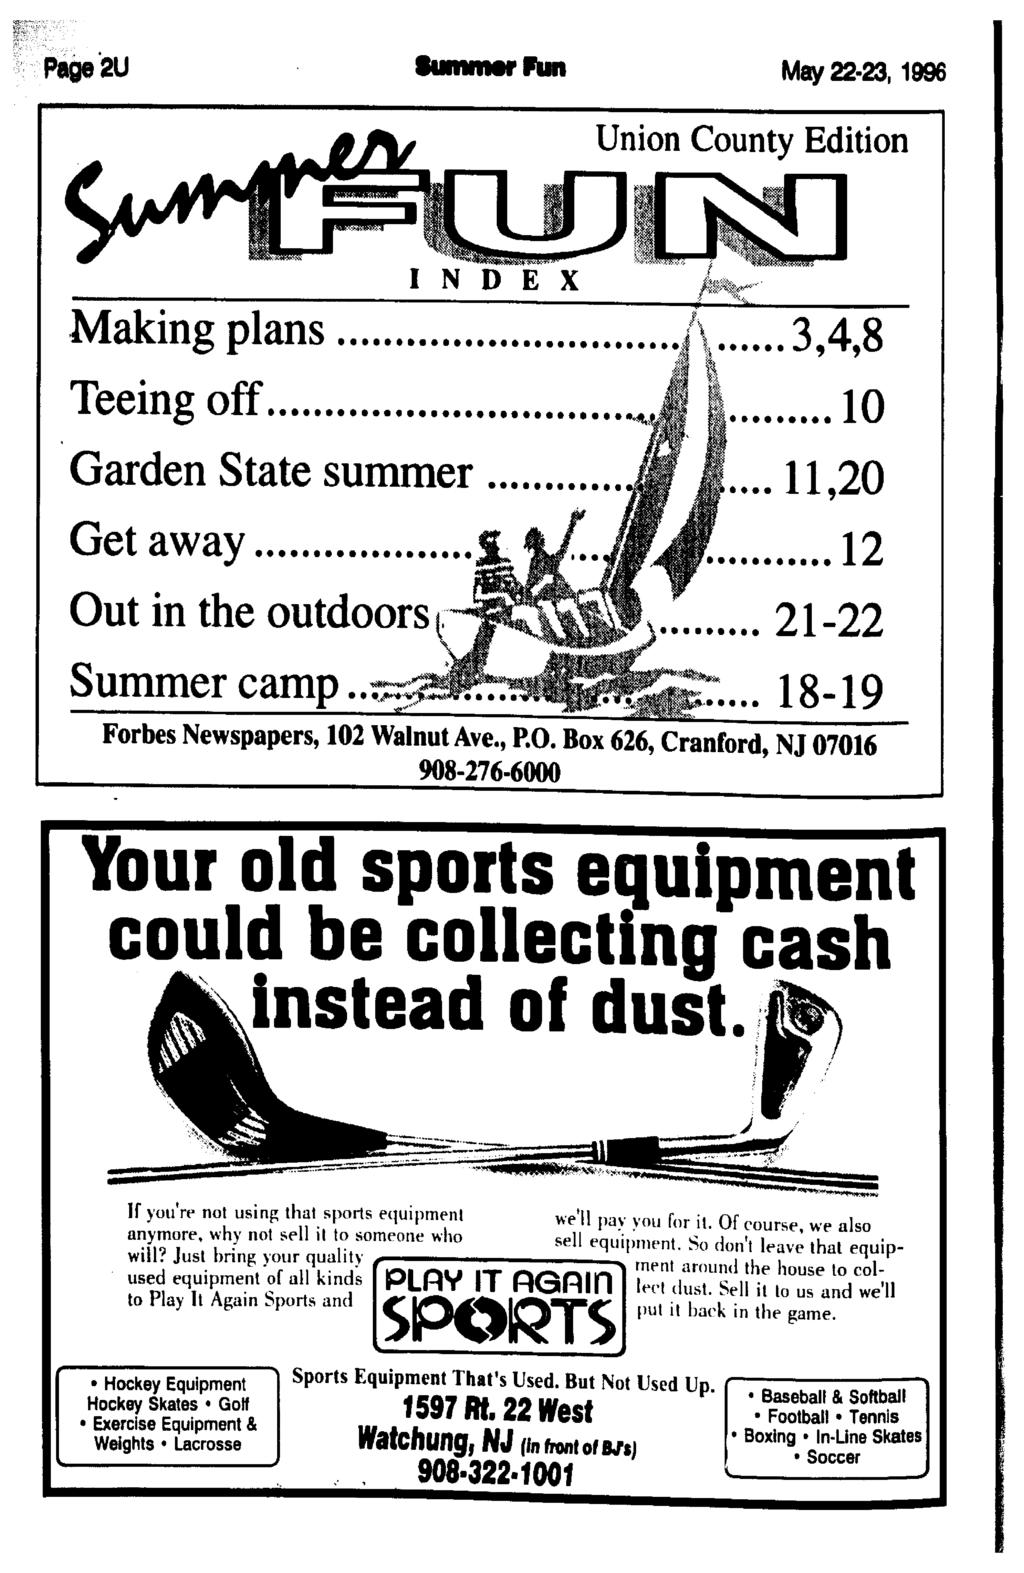 Page2U SunwMf Pun May 22 231996 Union County Edition I N D E X Making Plans